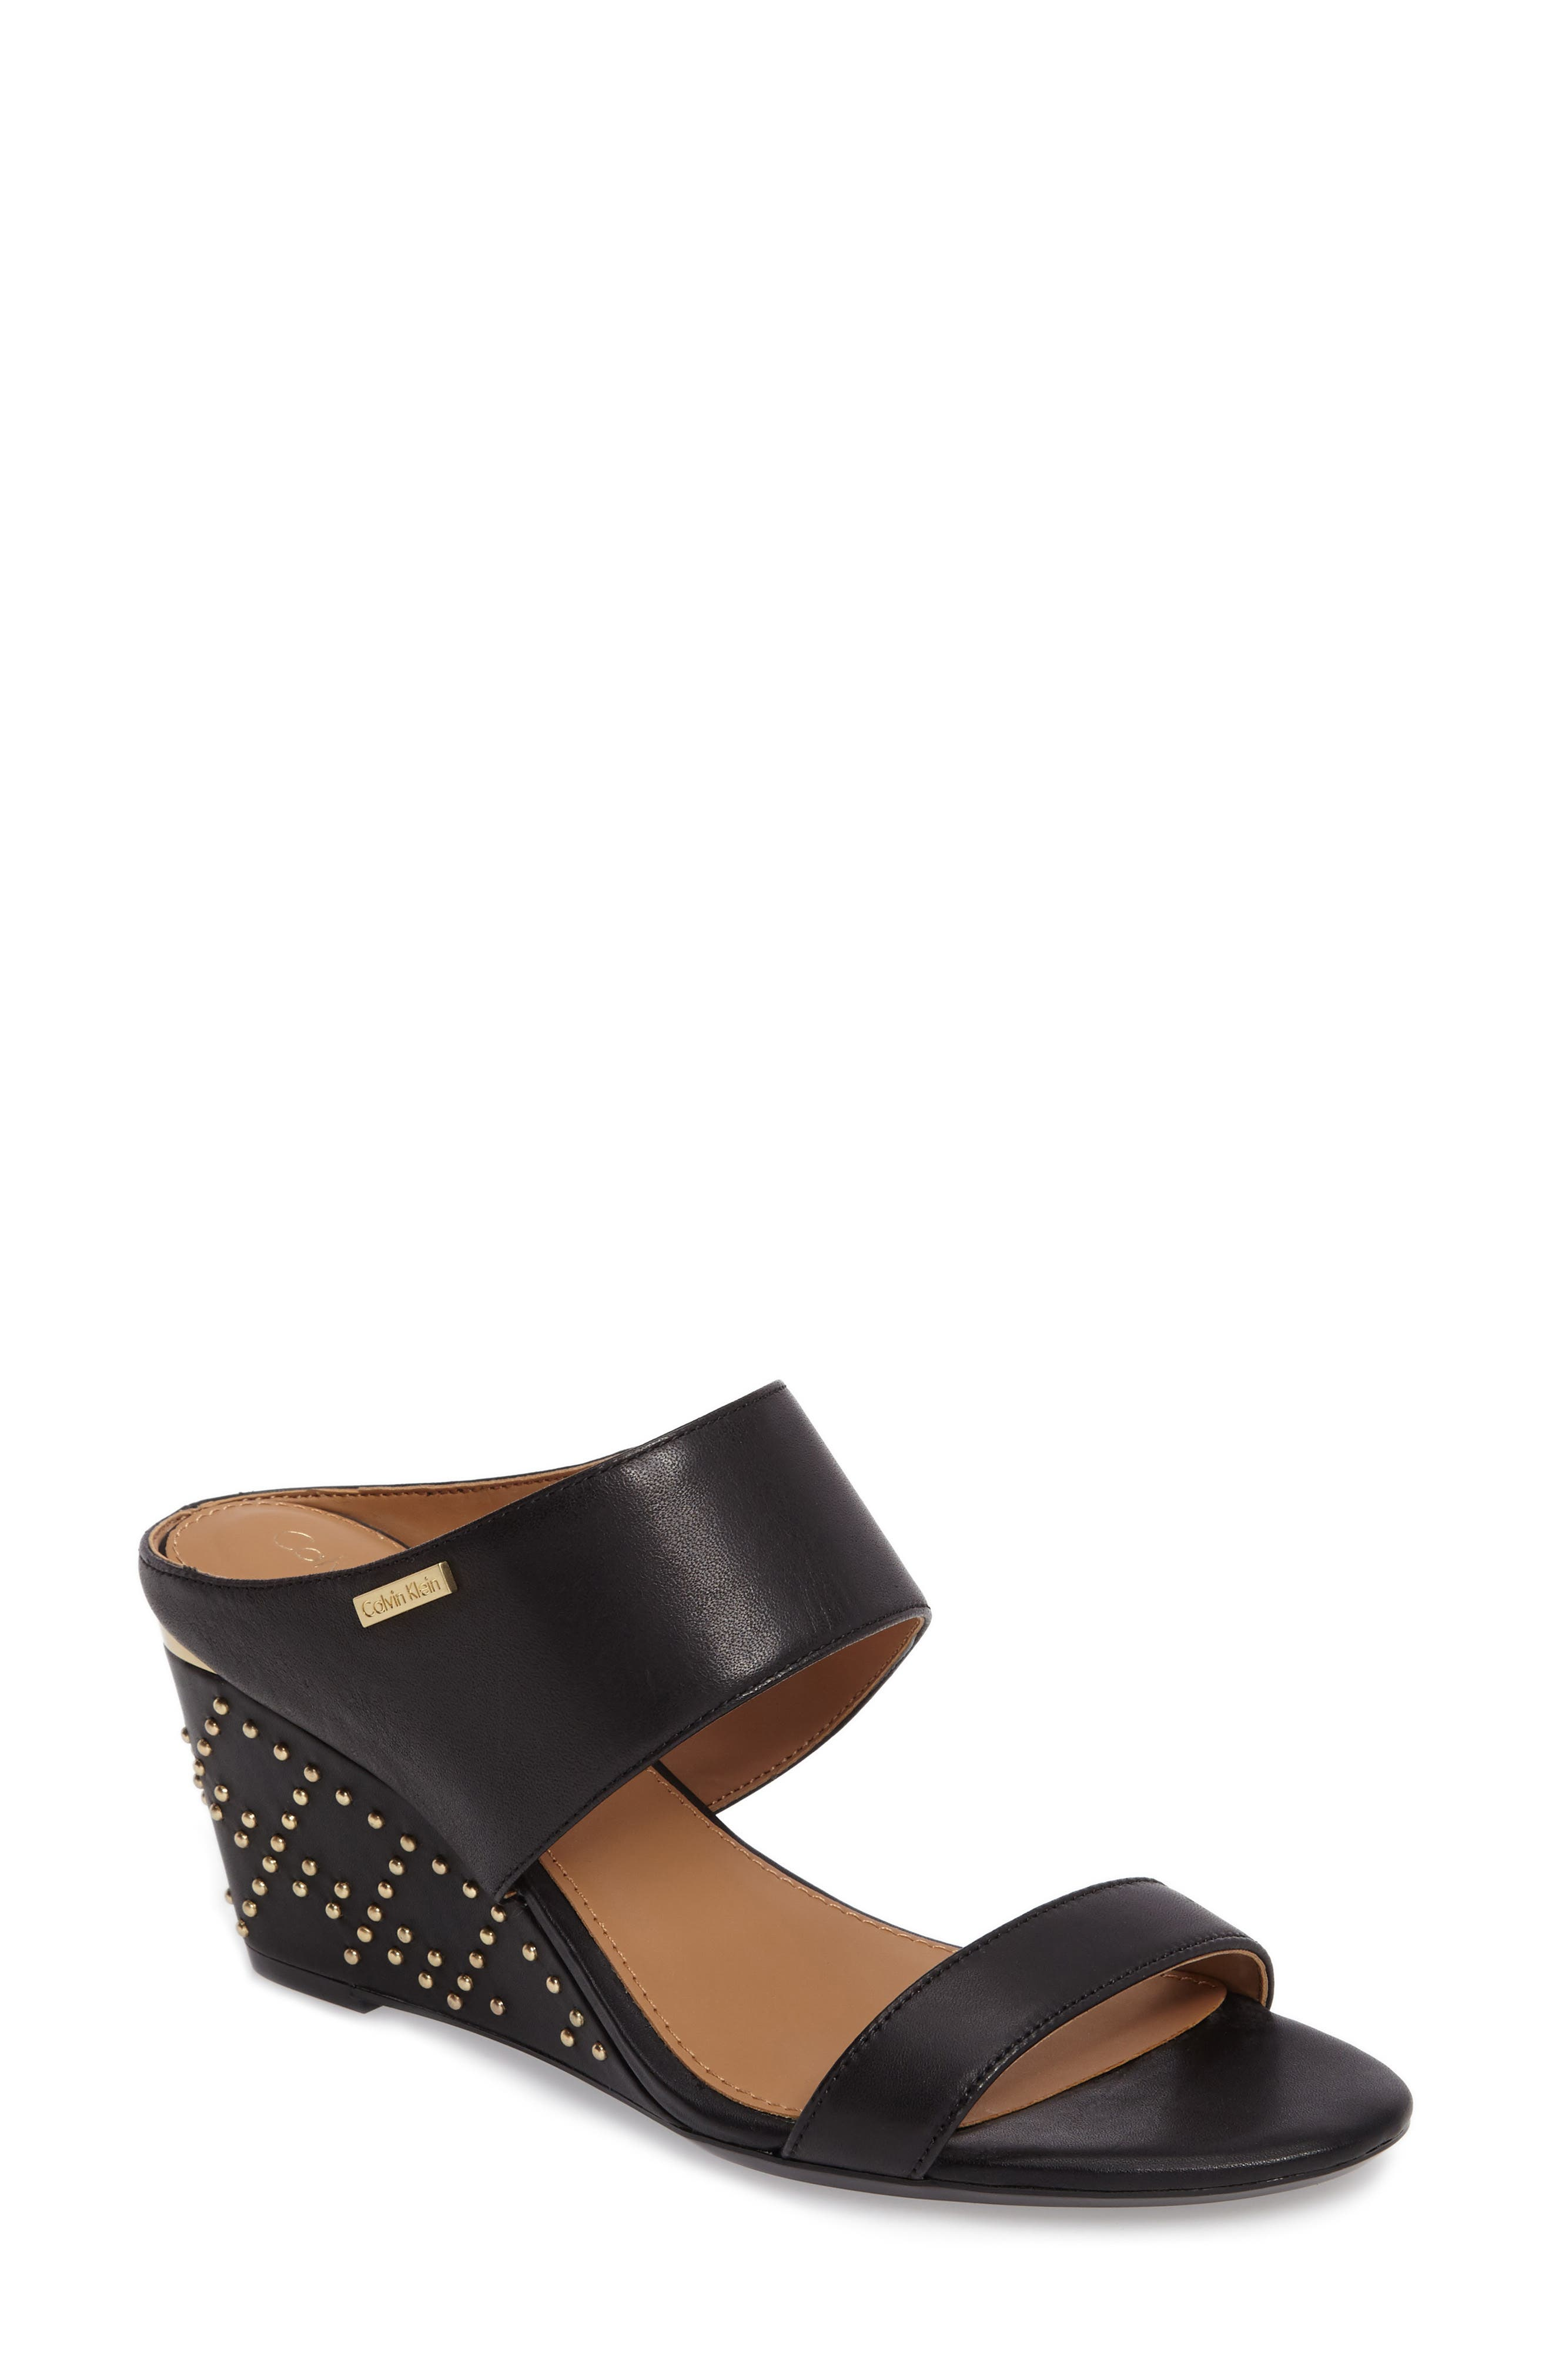 Phyllis Studded Wedge Sandal,                         Main,                         color, Black Leather